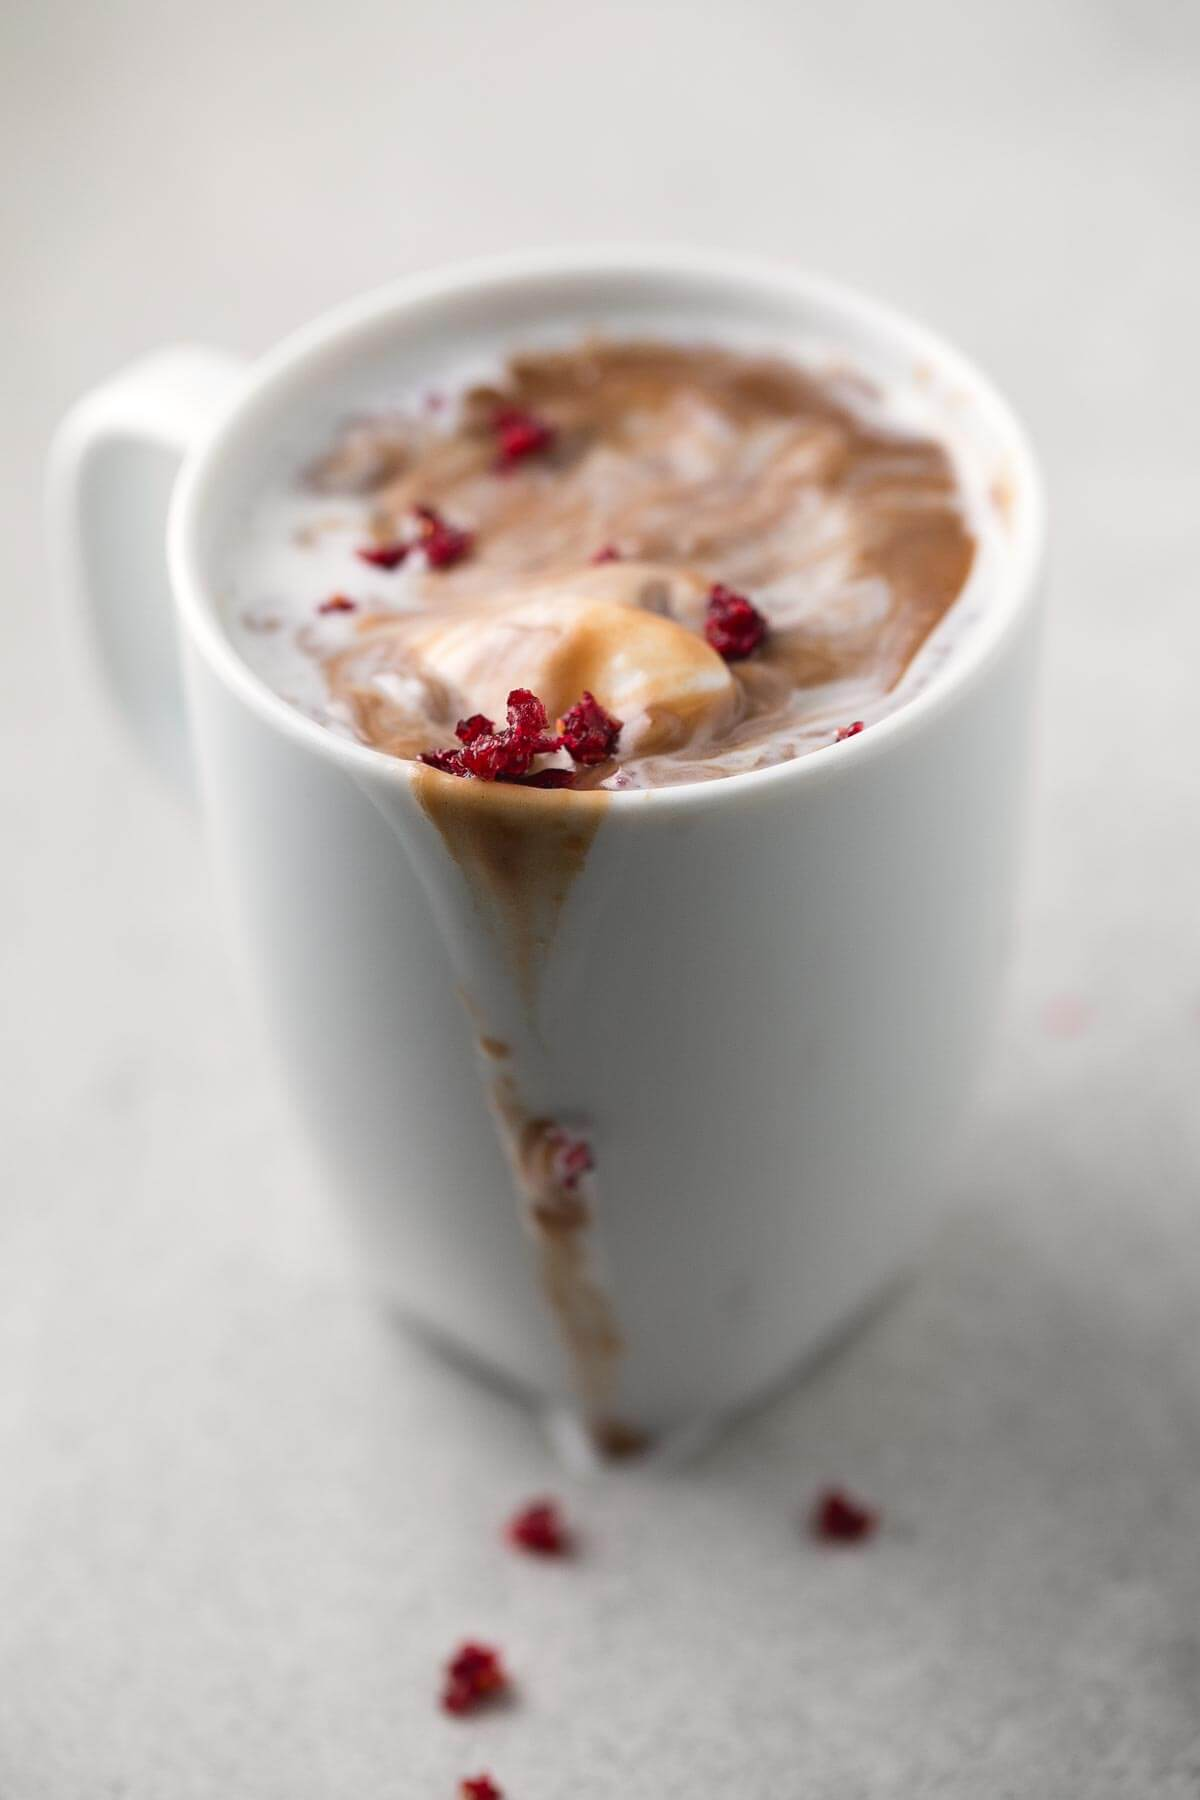 Vegan Hot Chocolate. - Hot drinks help us to warm up, and hot chocolate is a classic. This vegan version is to die for.